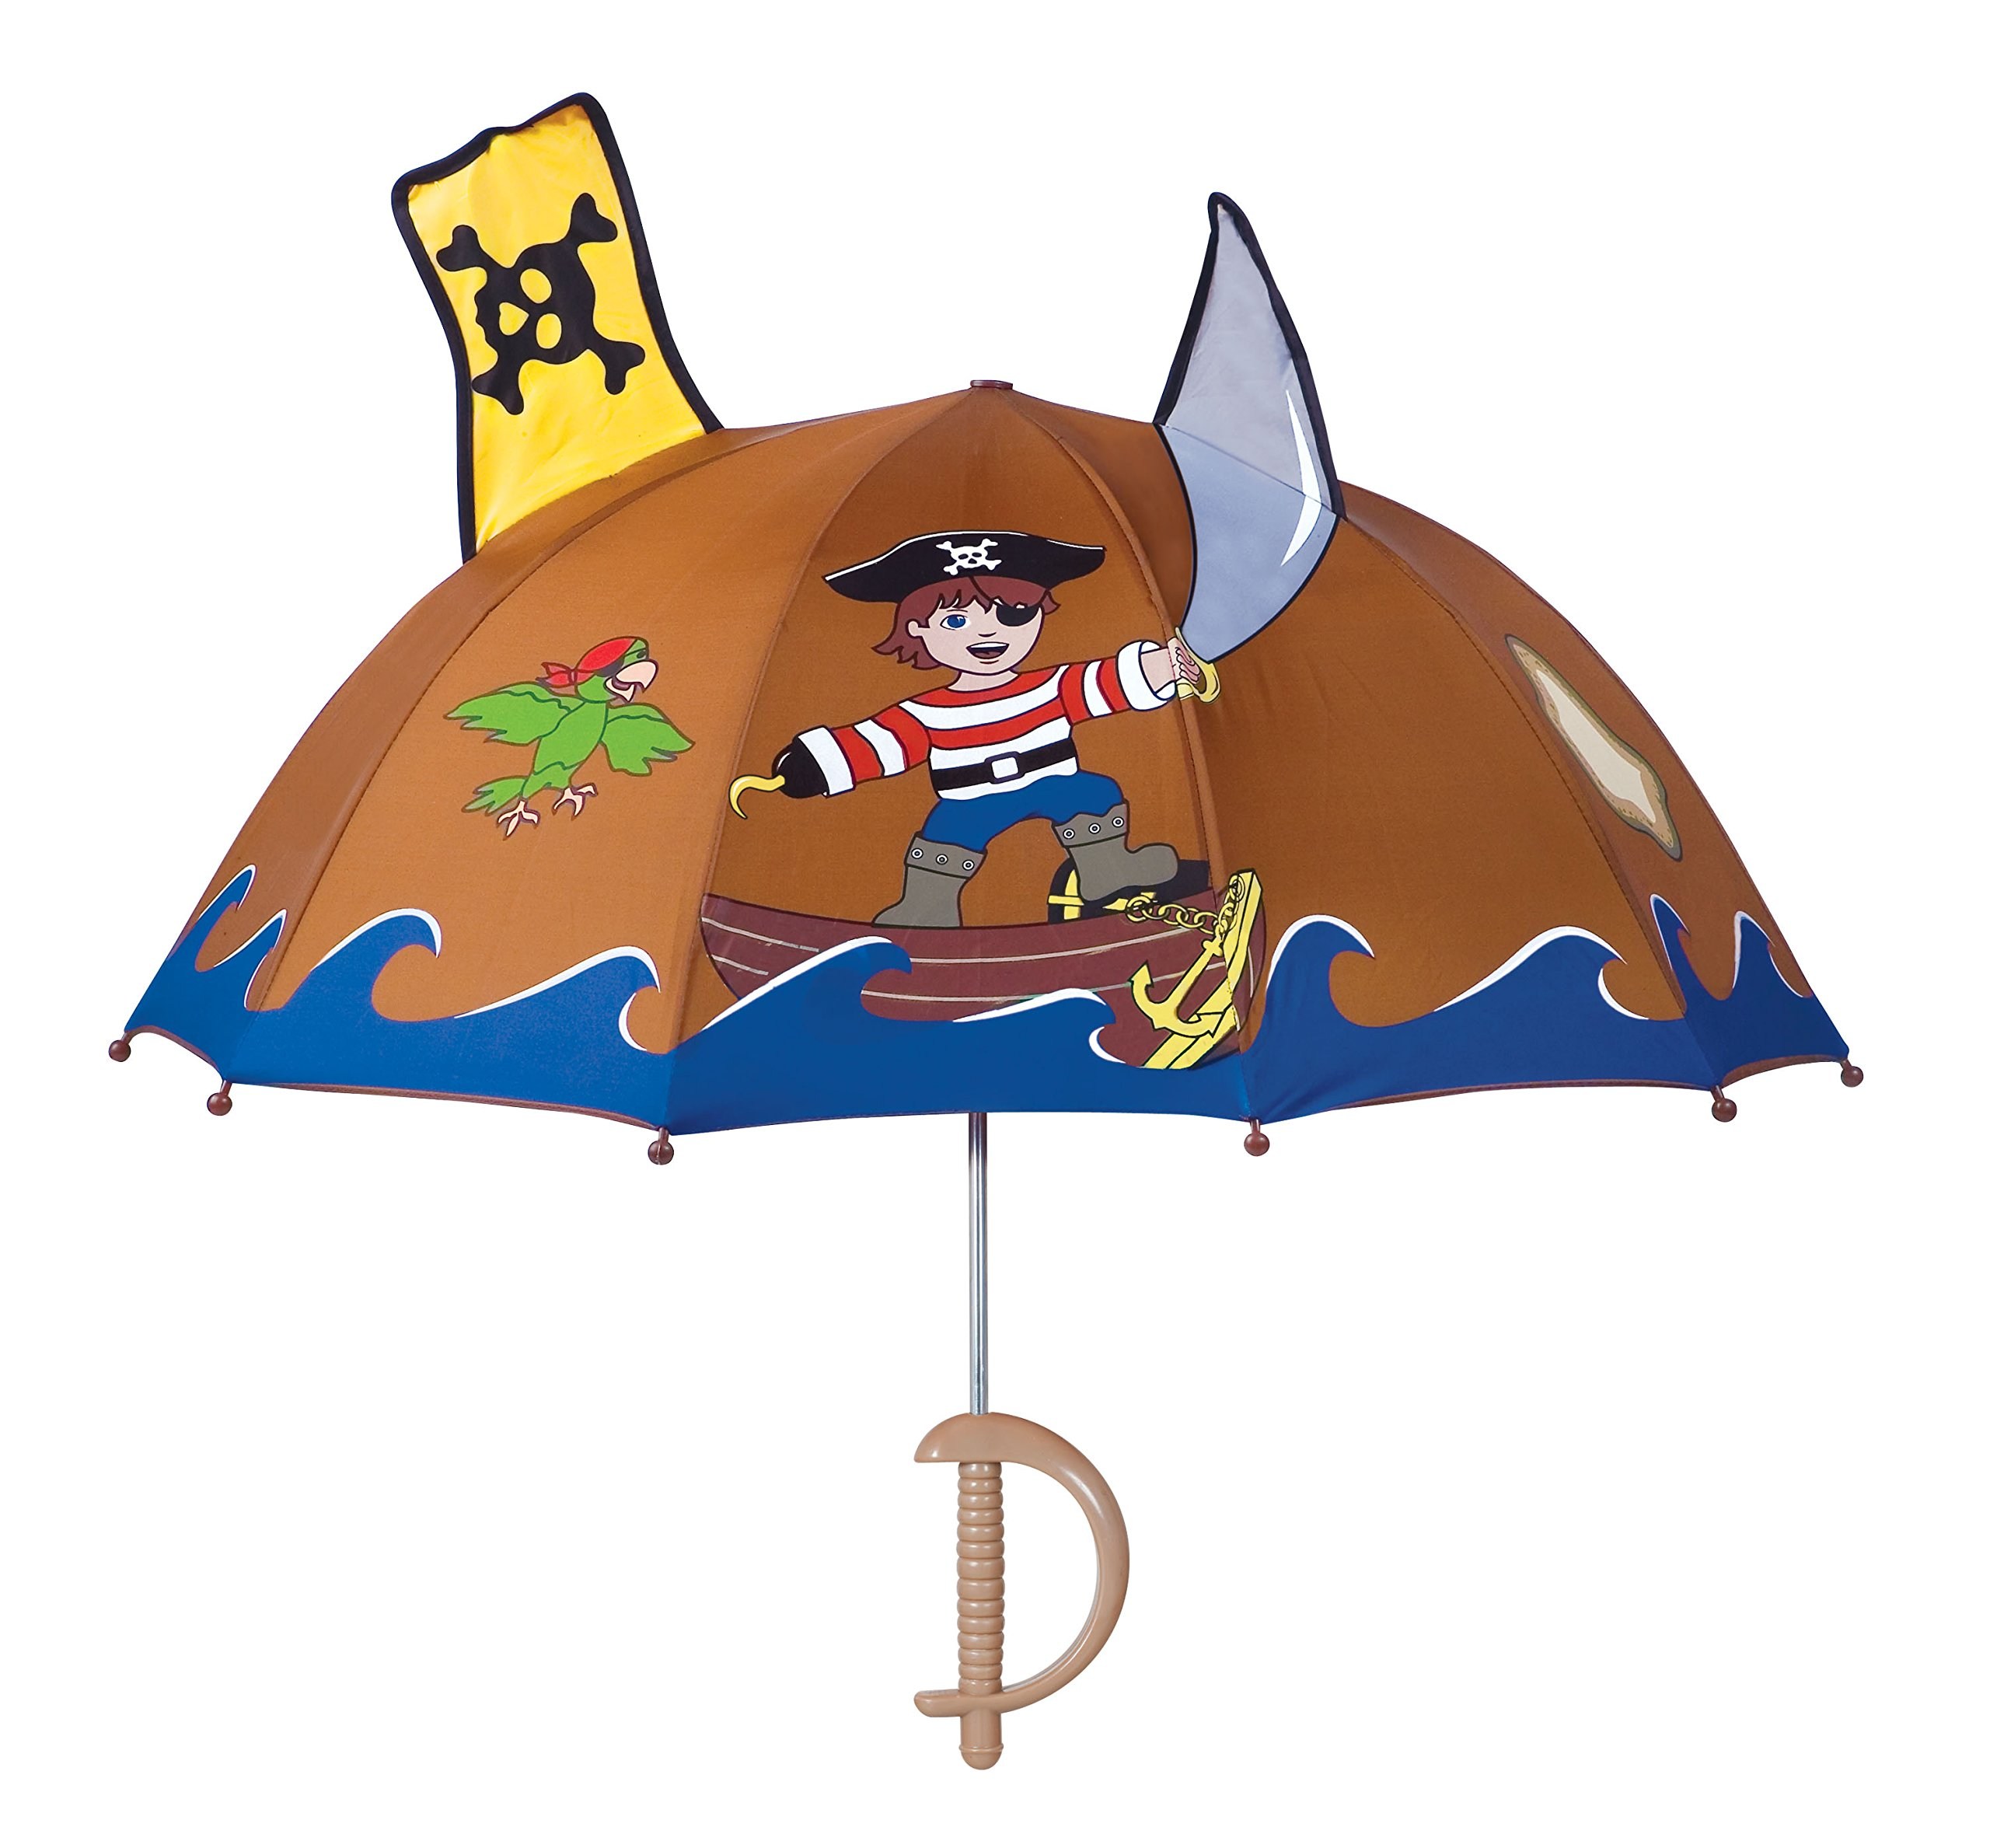 Kidorable Pirate Umbrella, Brown, One Size for Toddlers and Big Kids, Lightweight Child-Sized Nylon Rain Proof Umbrella